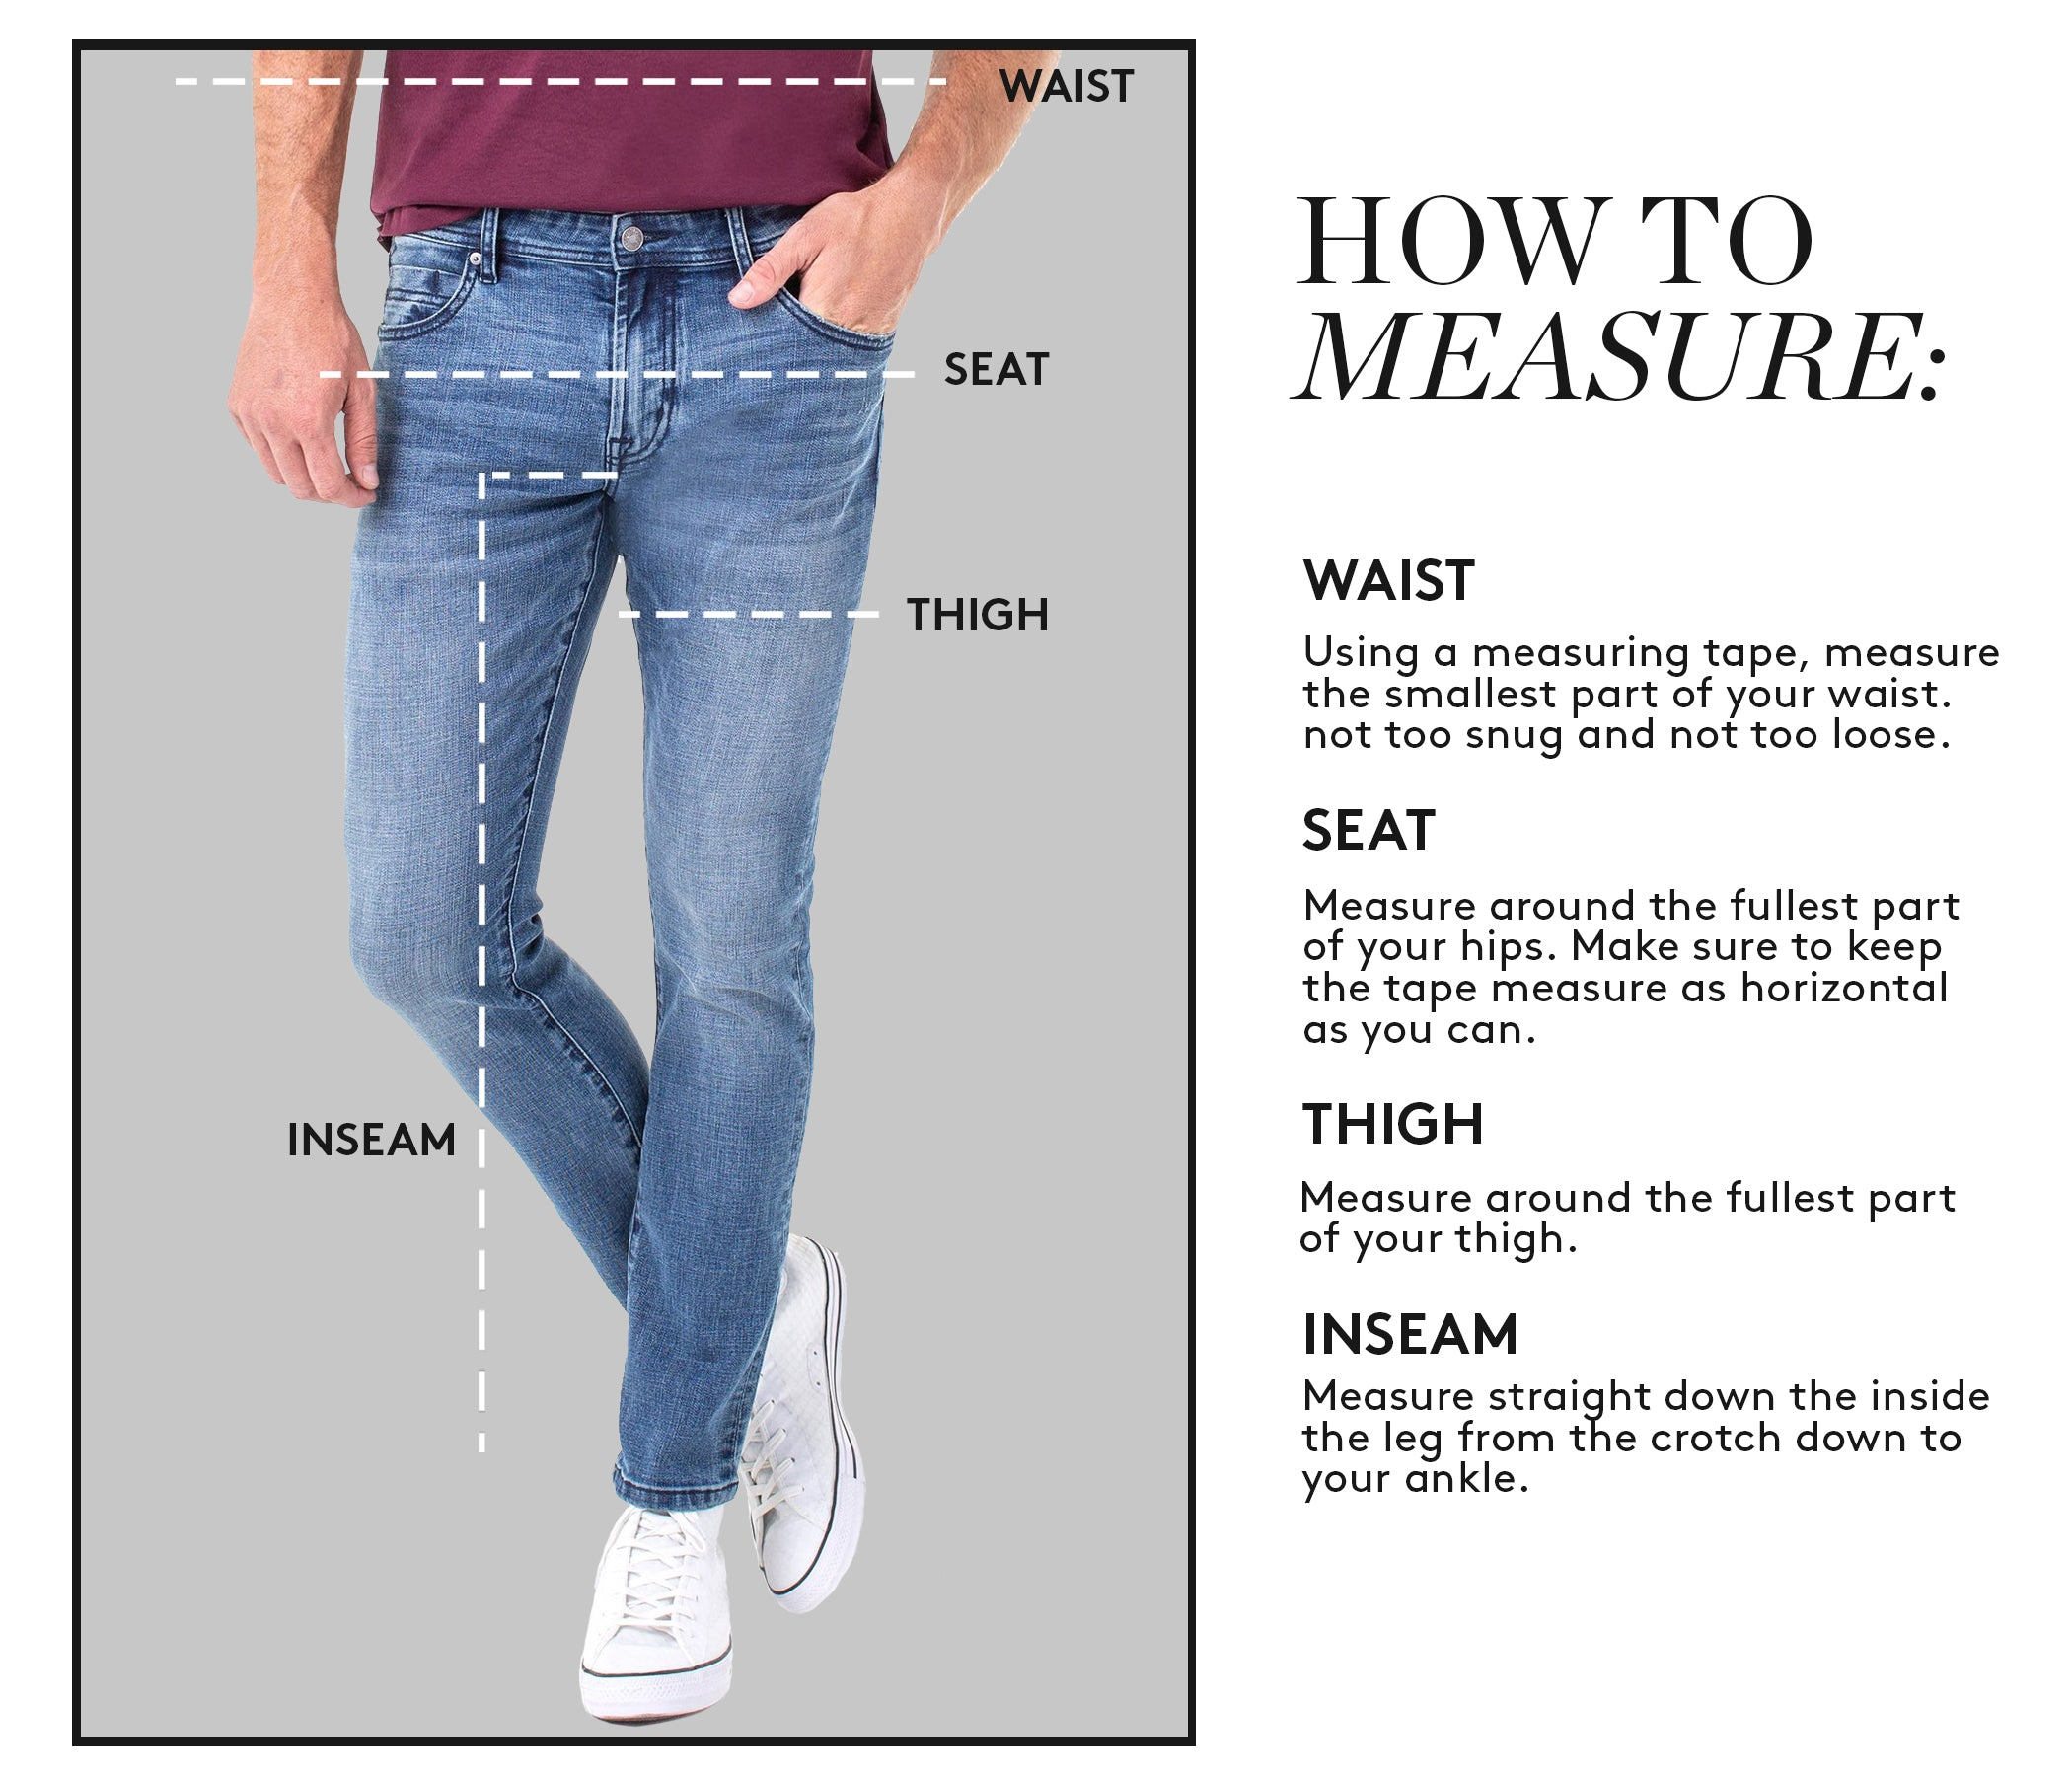 HOW TO MEASURE: WAIST: Using a measuring tape, measure the smallest part of your waist. not too snug and not too loose. SEAT: Measure around the fullest part of your hips. Make sure to keep the tape measure as horizontal as you can. THIGH: Measure around the fullest part of your thigh. INSEAM: Measure straight down the inside the leg from the crotch down to your ankle.